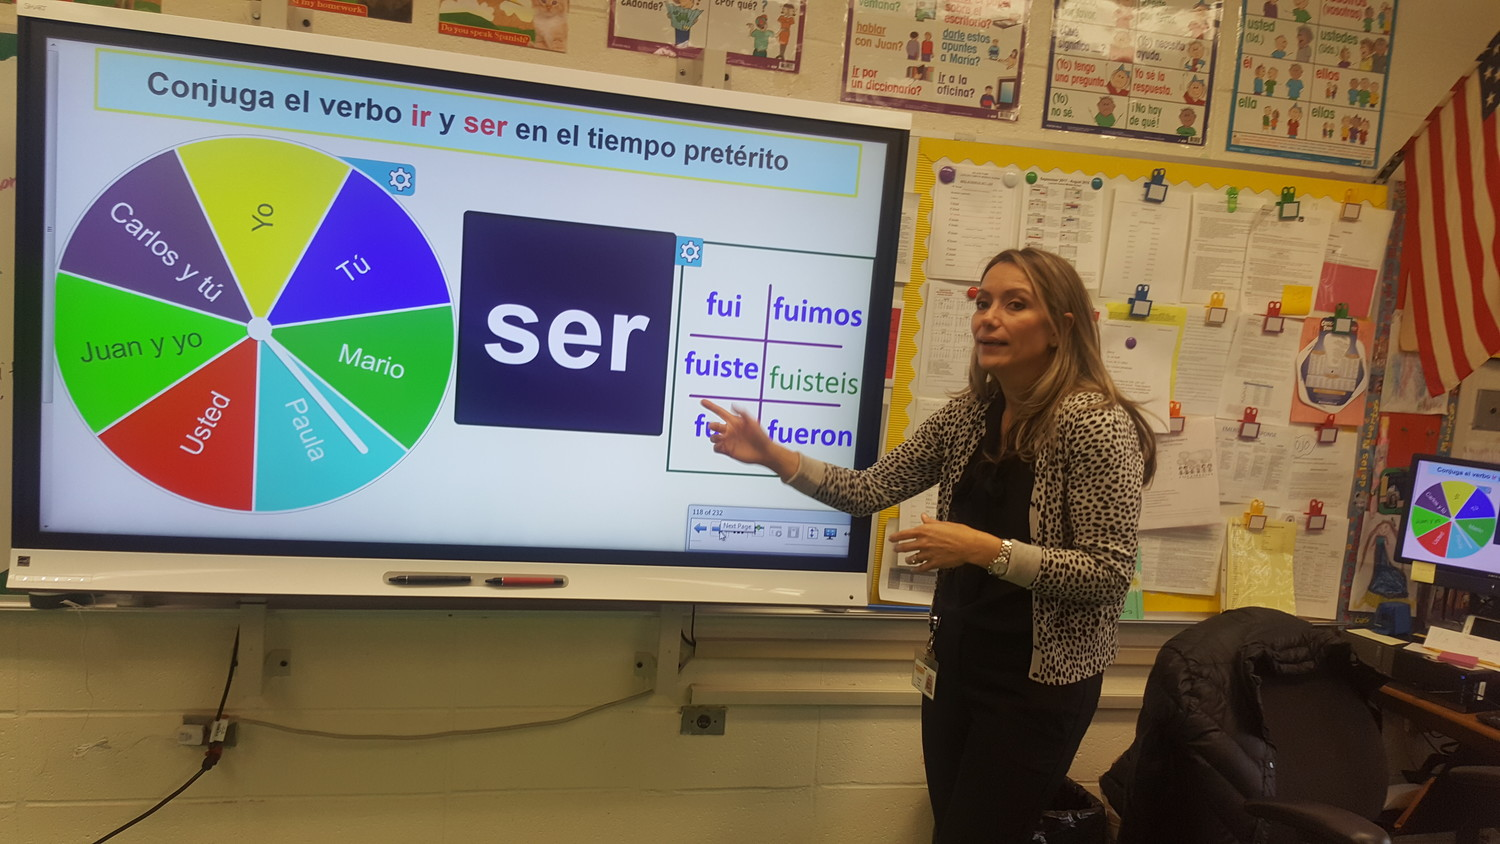 Irelanda Feil, the Spanish teacher at Lincoln Orens Middle School in Island Park, has an electronic blackboard that displays different ways of conjugating verbs.